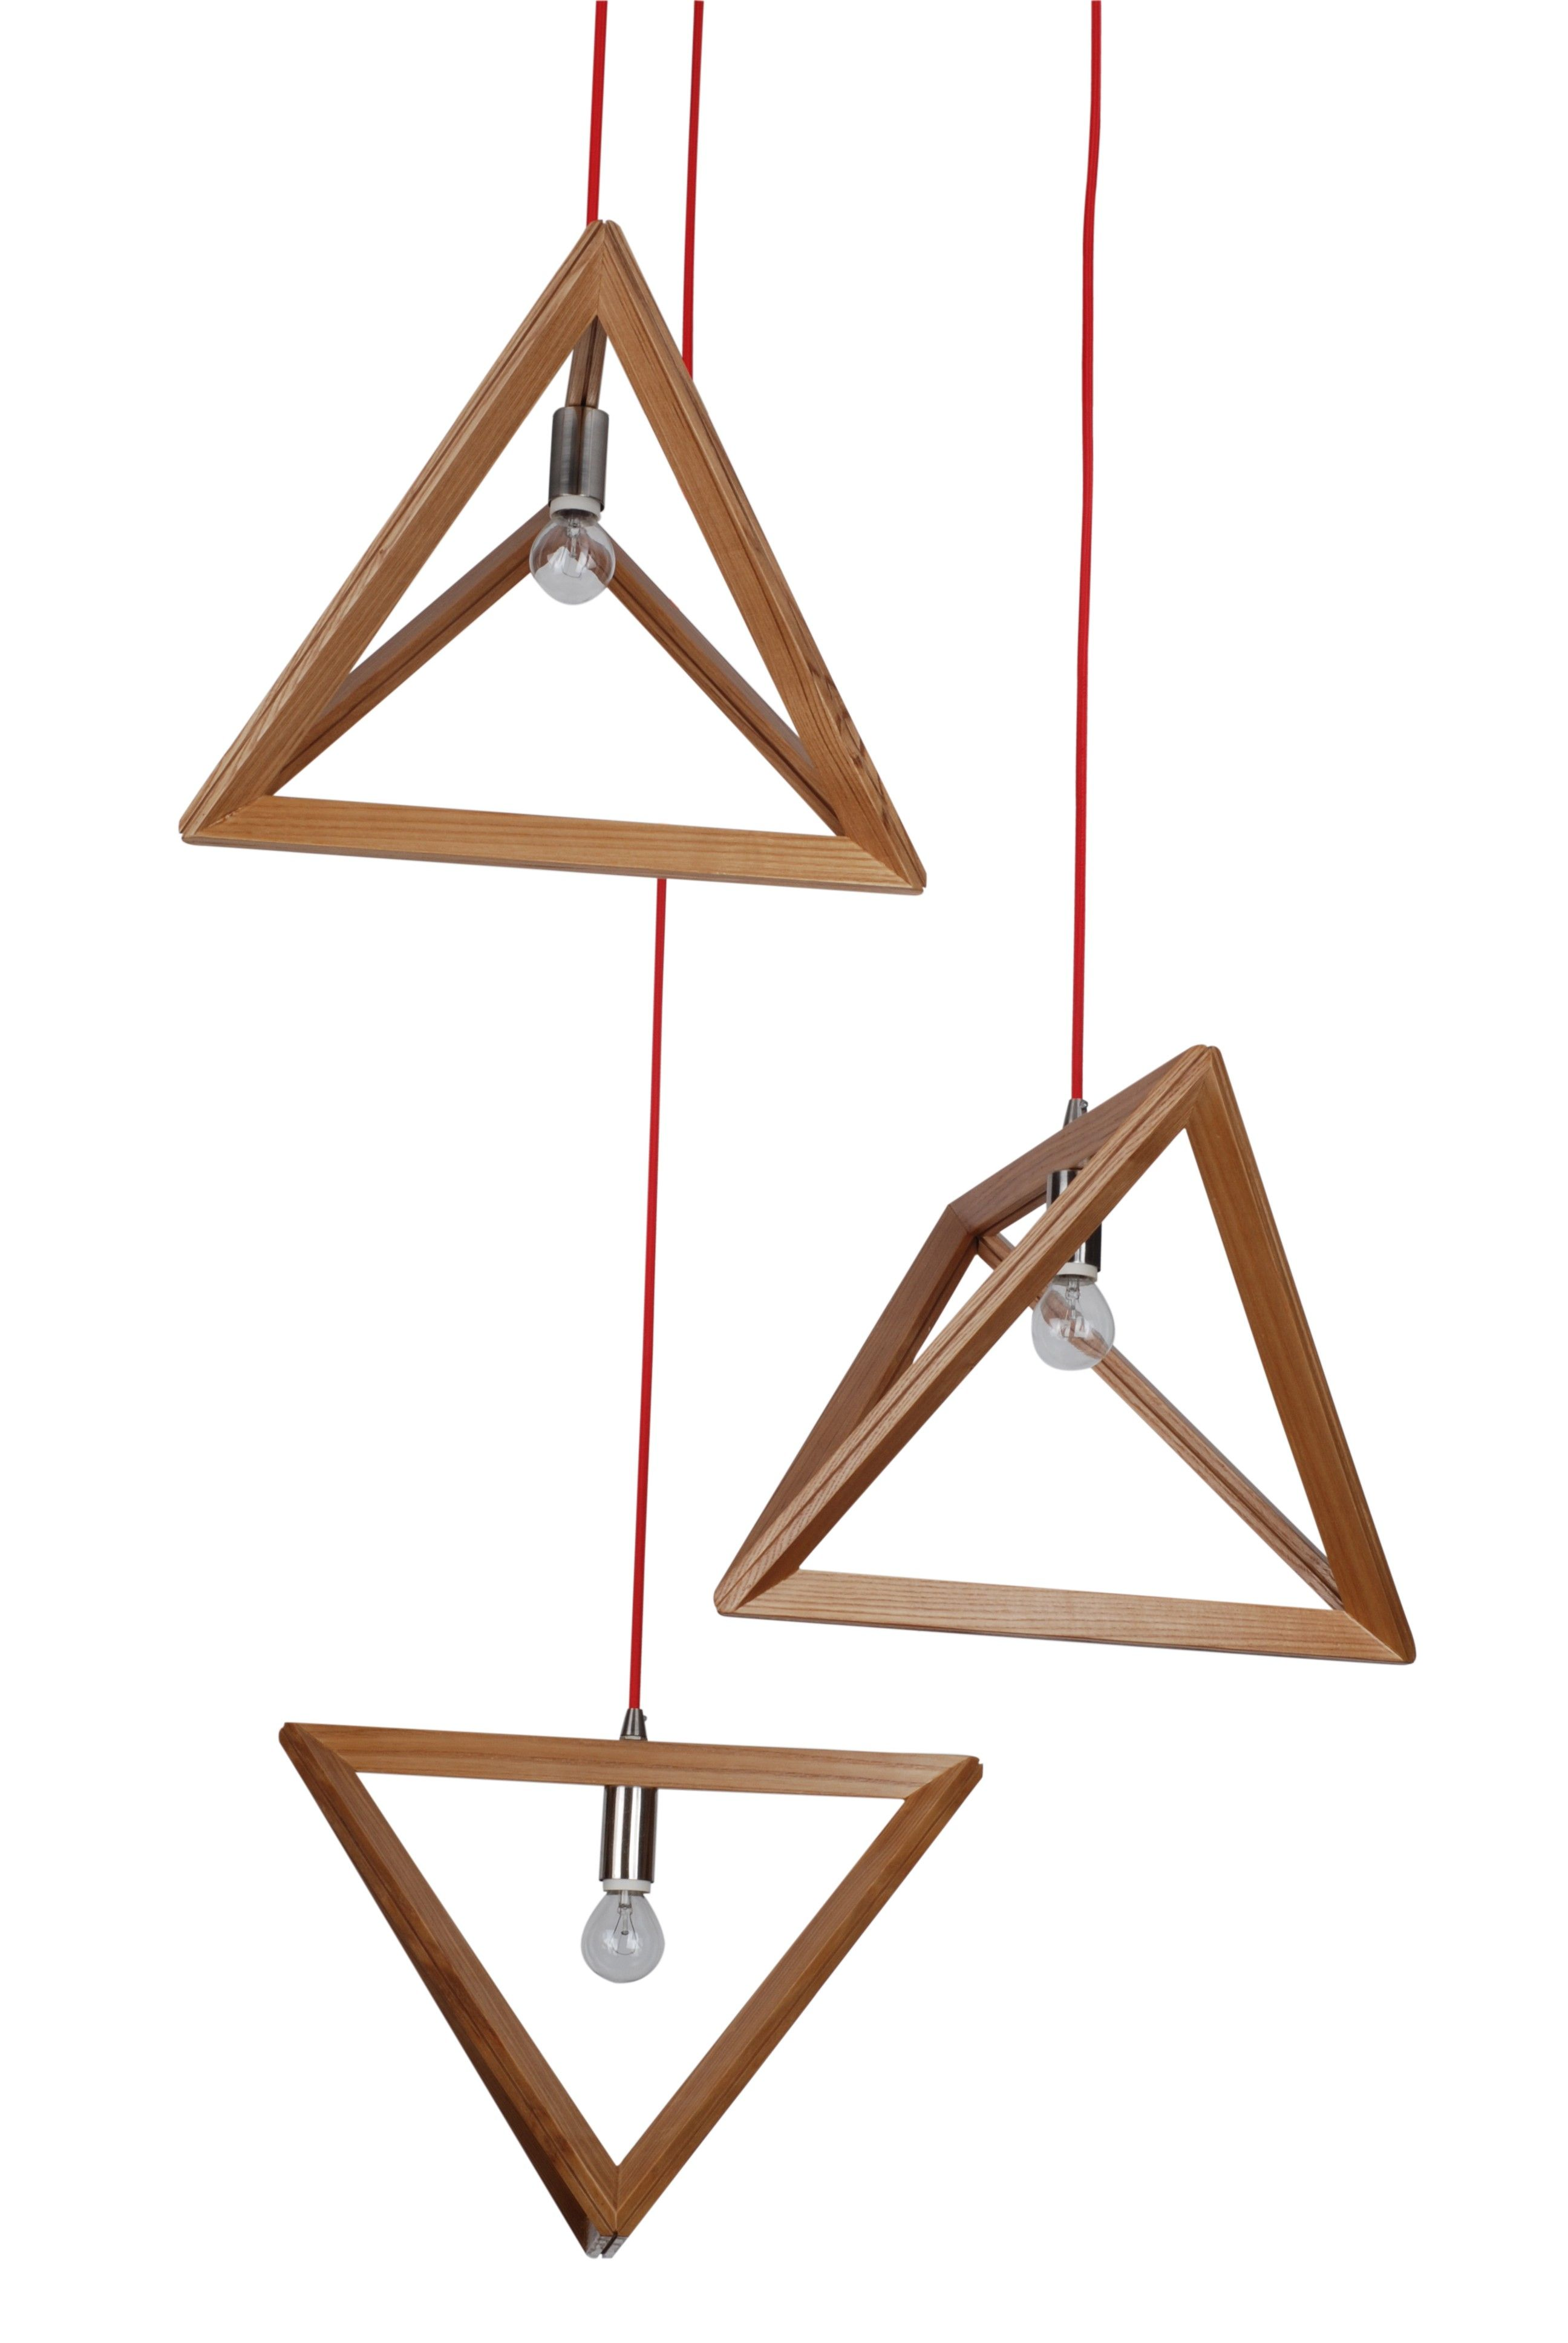 Wooden Lighting Pendants Pendant Light Natural Timber Wood Triangle Projects To